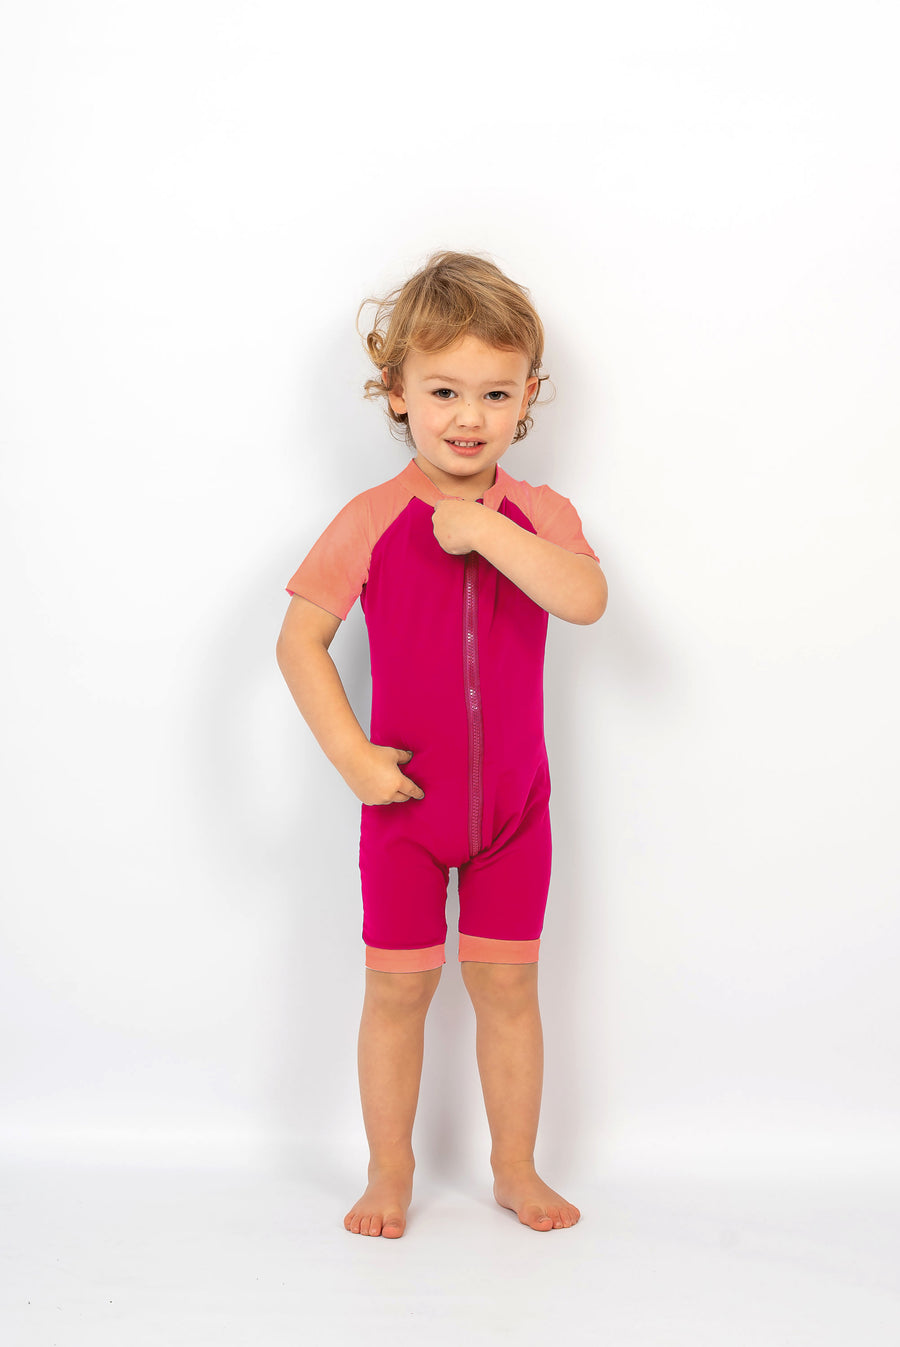 Ethical and sustainable swimwear for baby girl, baby boy to toddler, recycled ECONYL zippy swim onesie made in Australia.